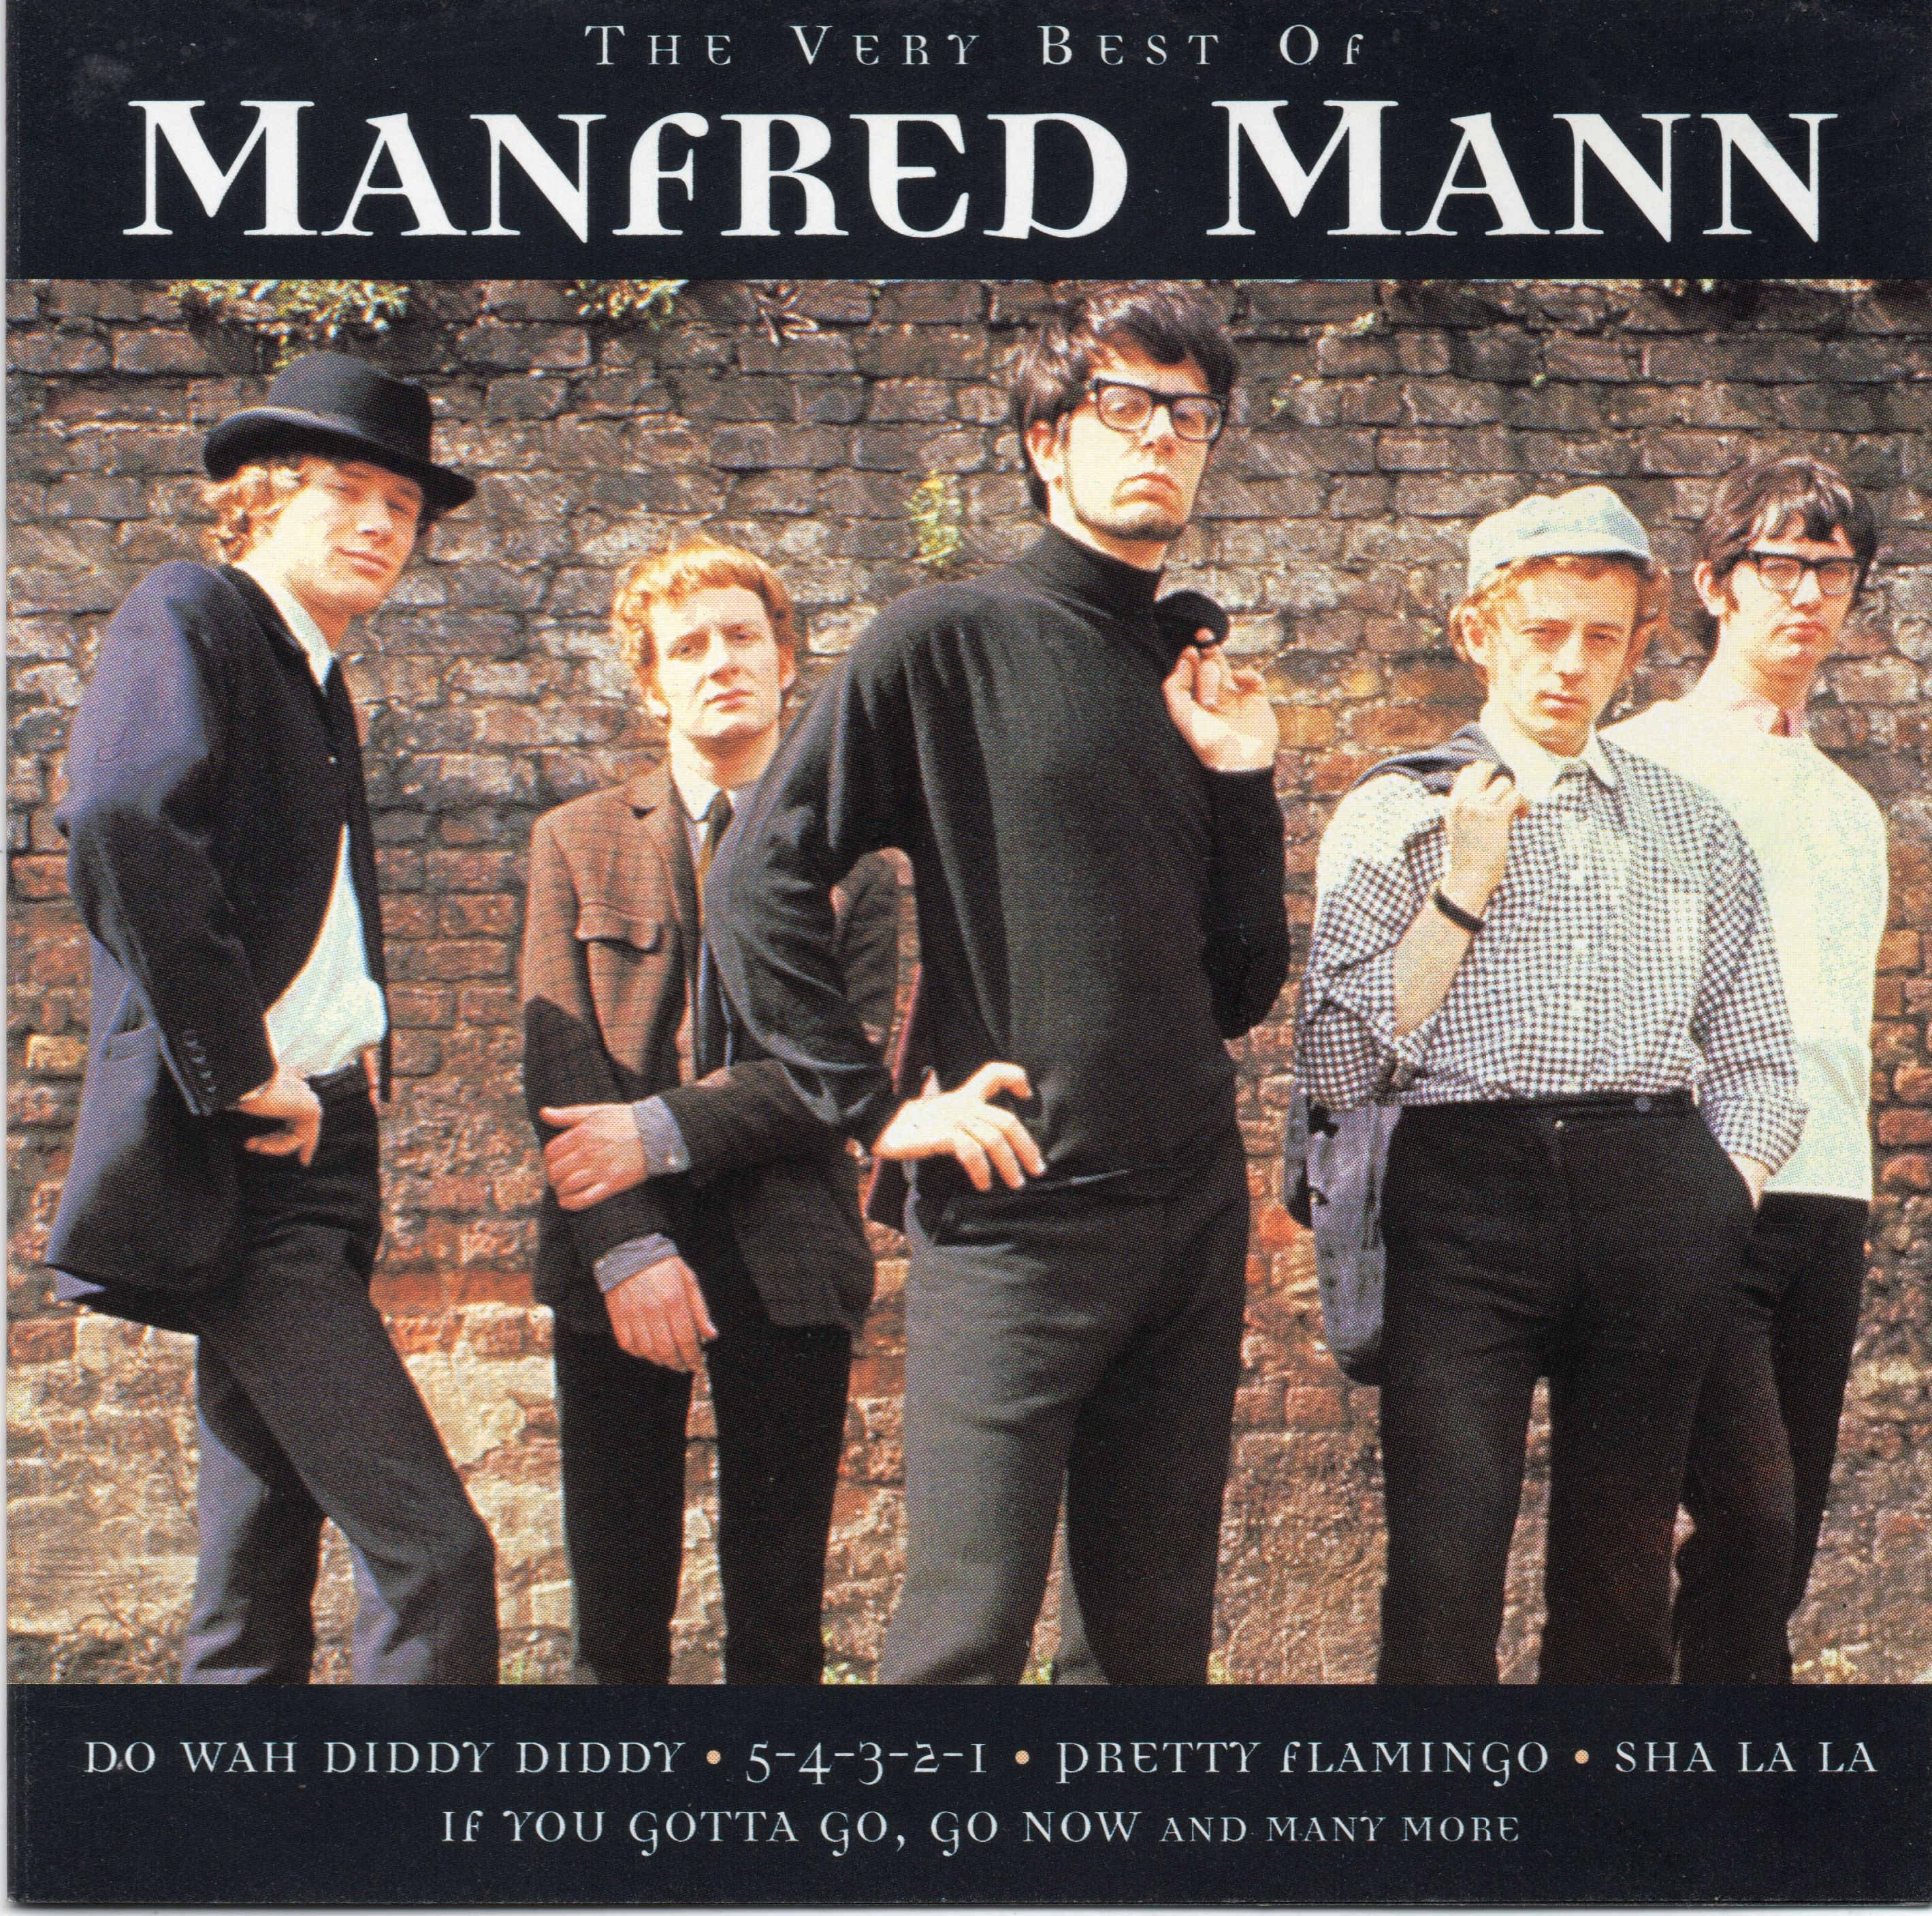 World Of Mann - The Very Best Of by Manfred Mann - Music